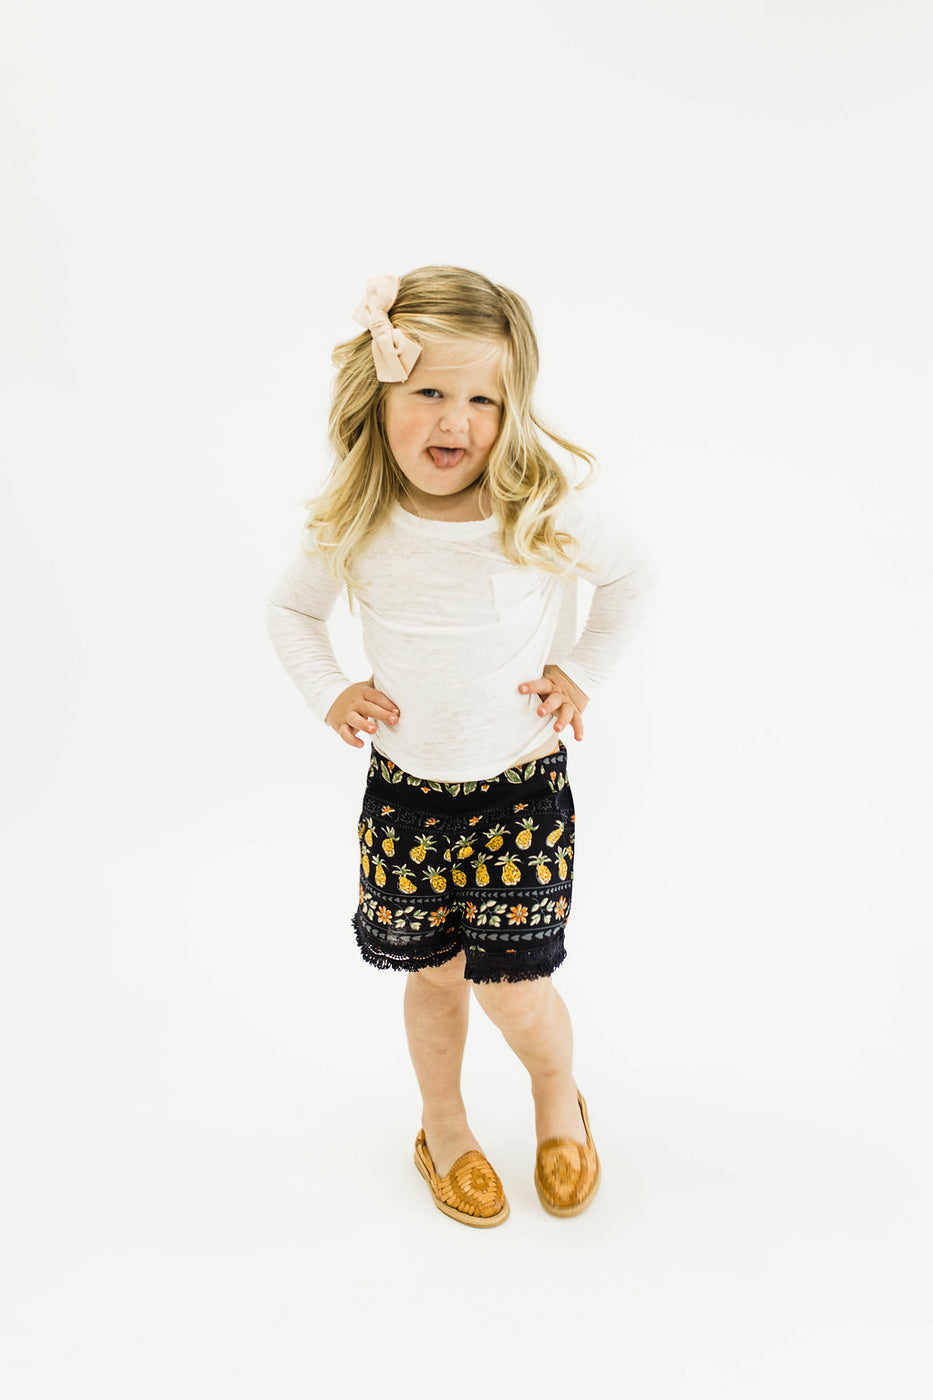 Vacation Outfit Ideas For Girls | ROOLEE Kids